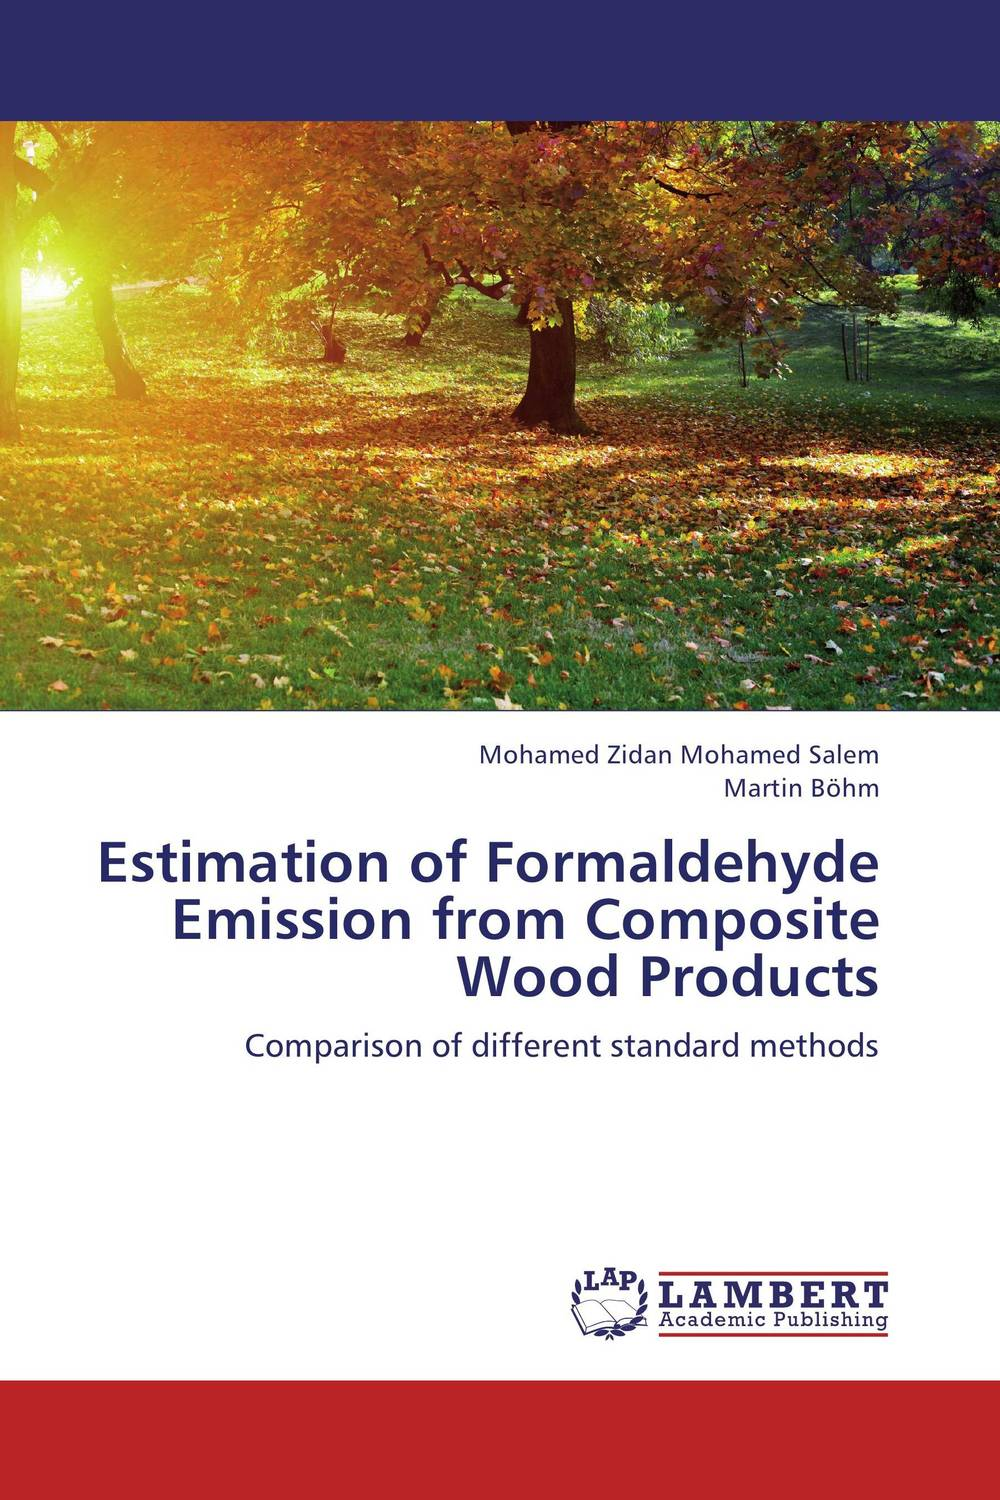 Estimation of Formaldehyde Emission from Composite Wood Products effect of different priming methods on seed quality of china aster